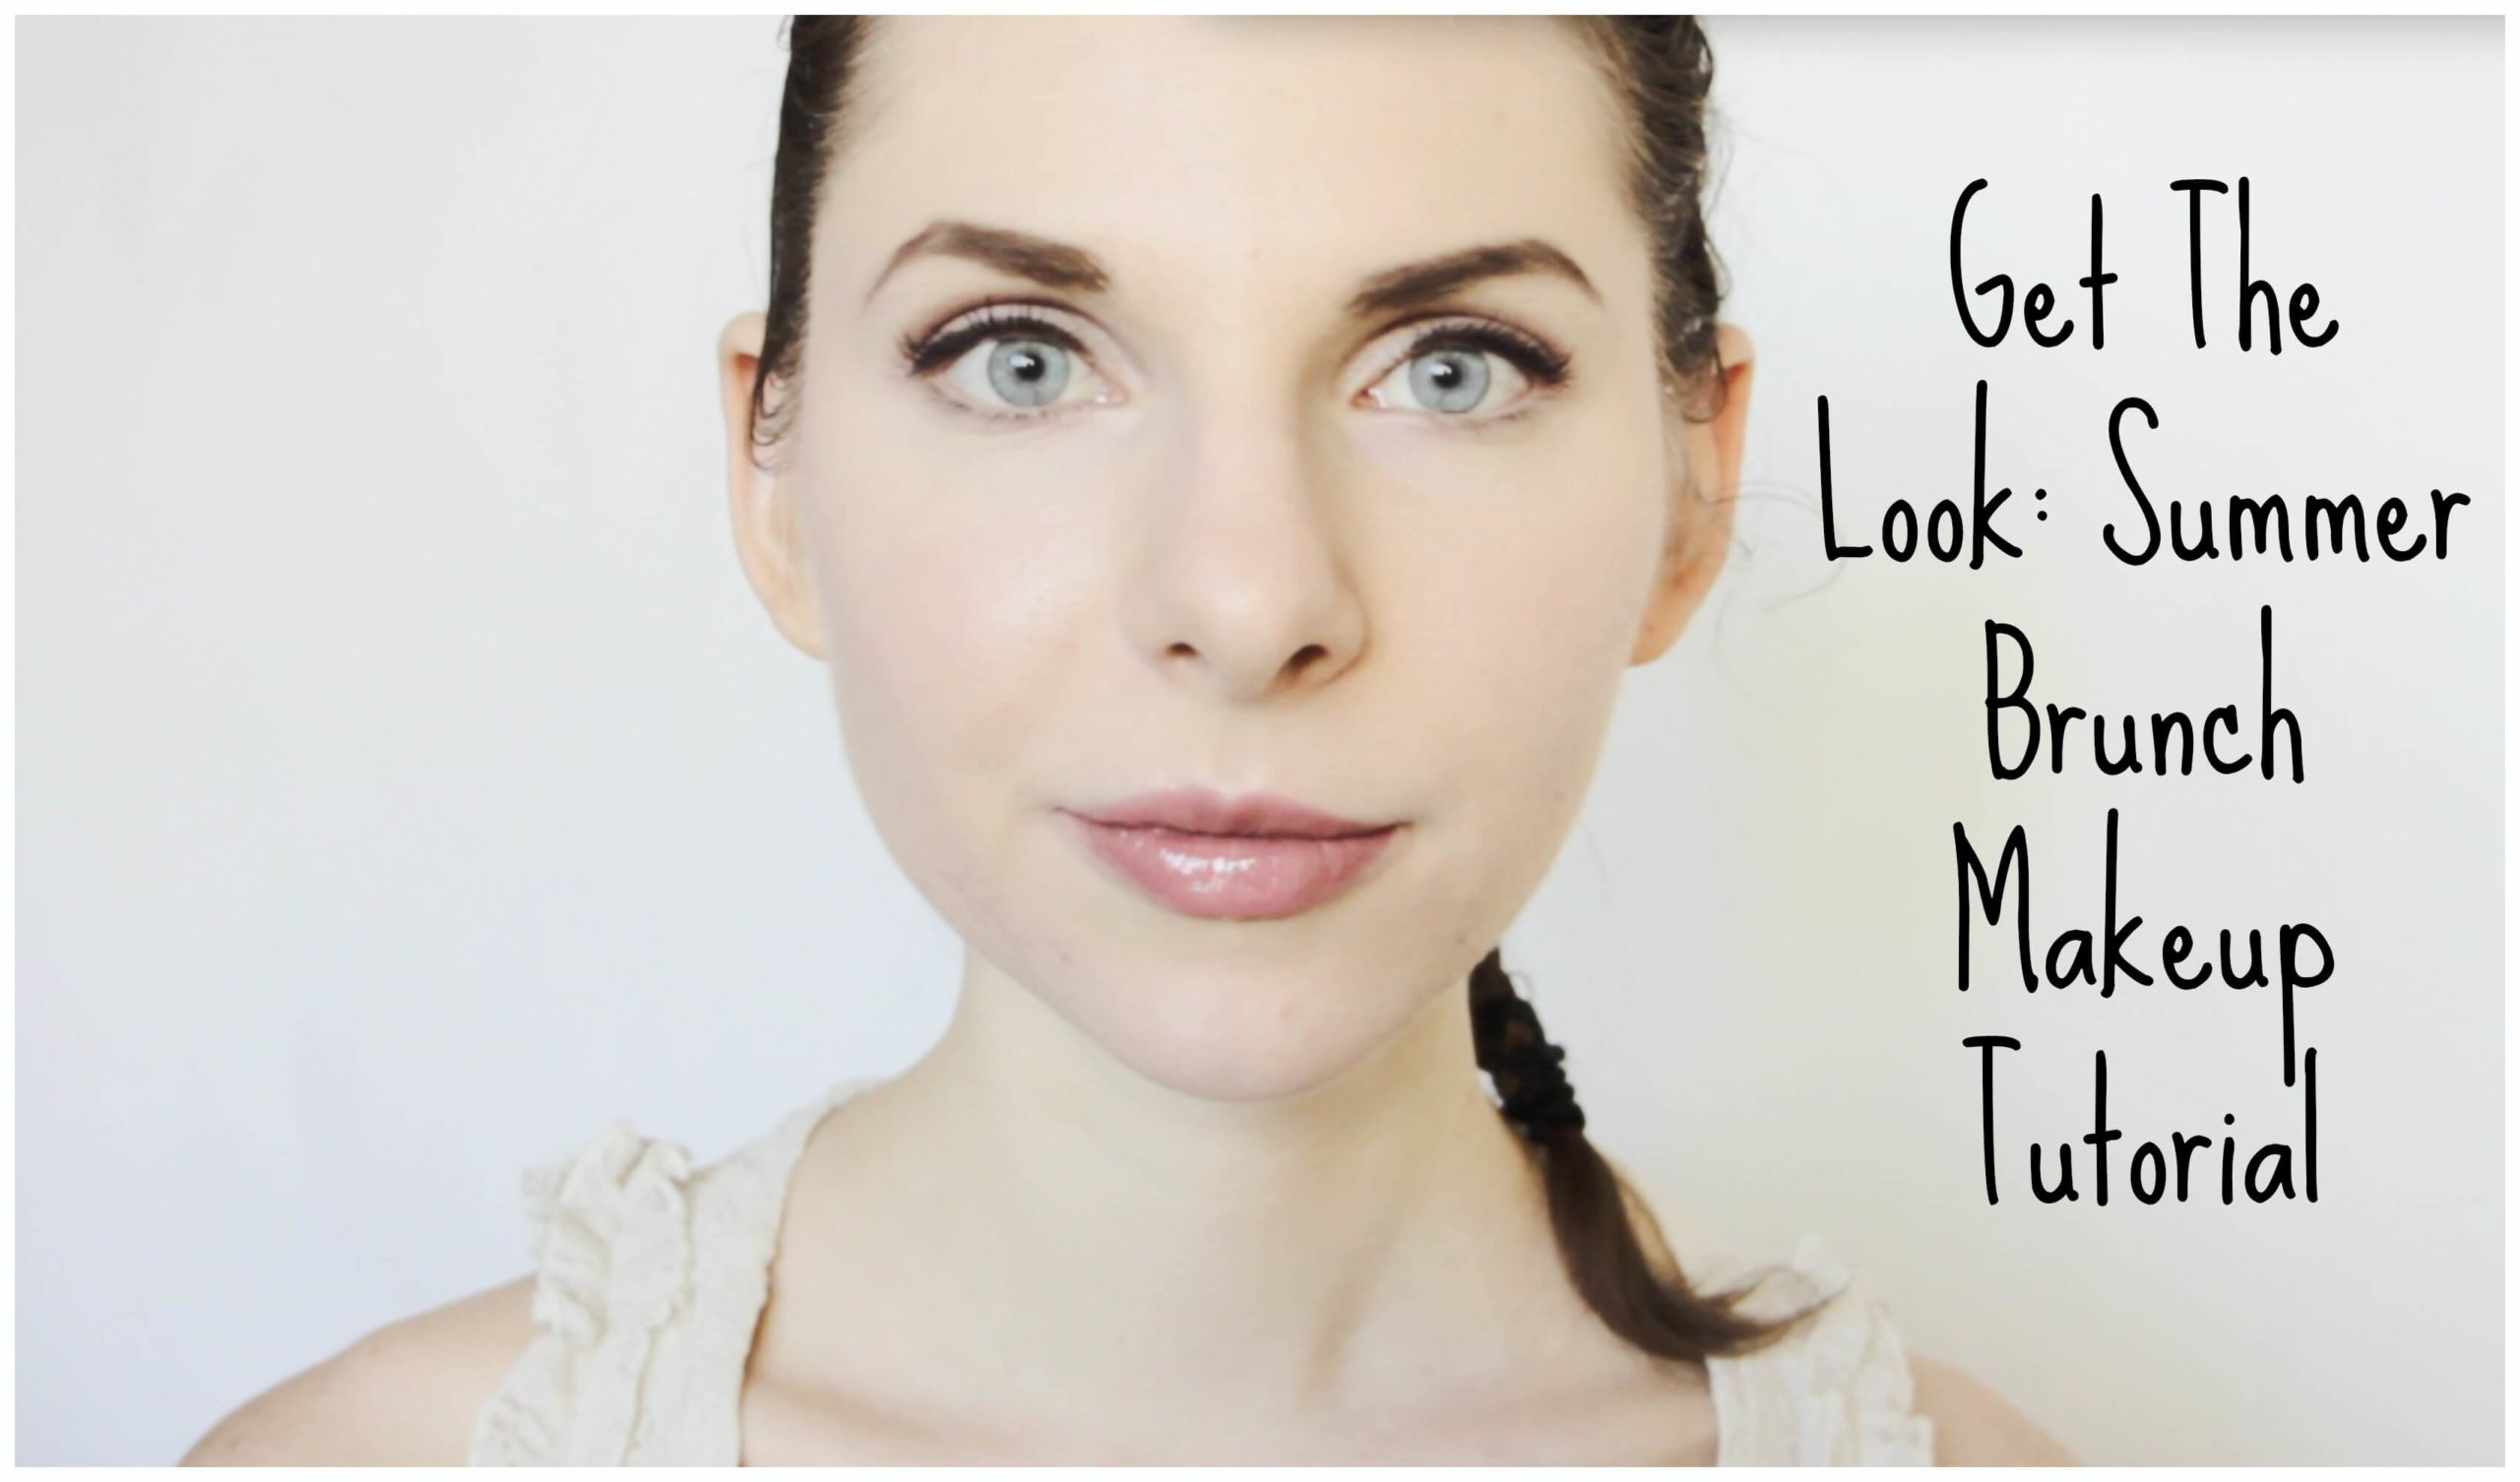 Gluten Free Brunch: Makeup, Outfits and Food!